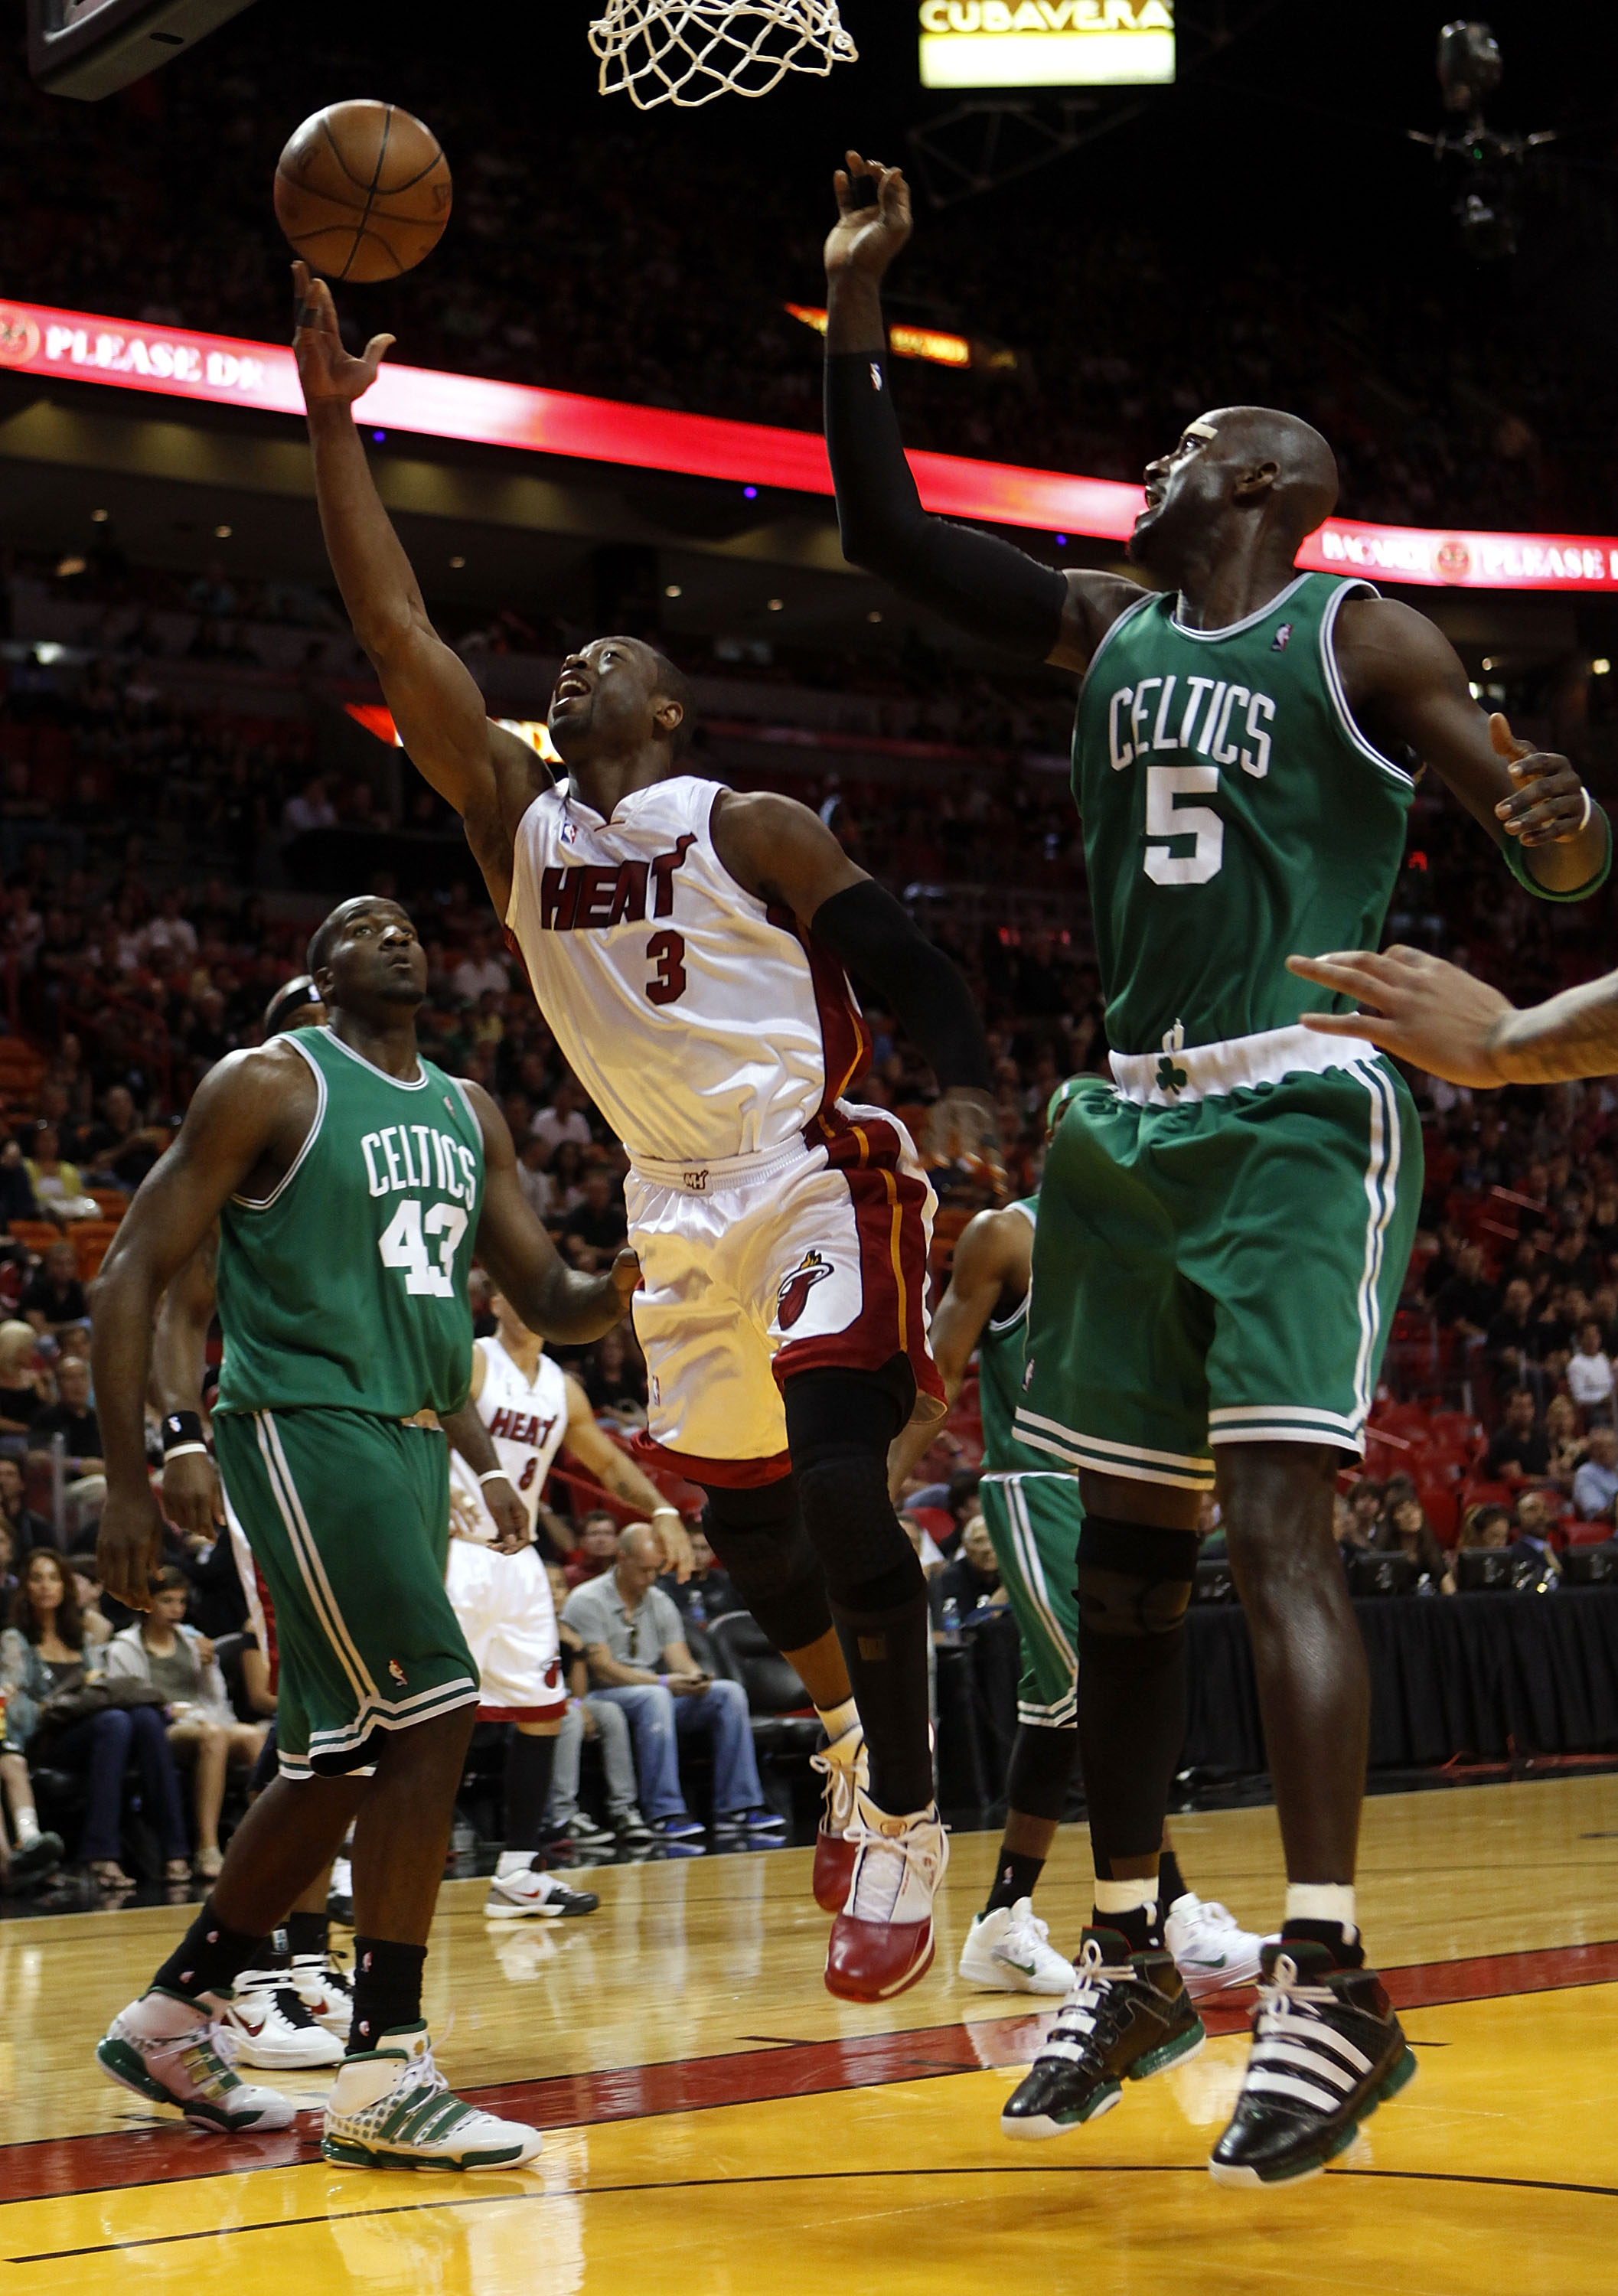 MIAMI - APRIL 25:  Guard Dwyane Wade #3 of the Miami Heat scores against Center Kendrick Perkins #43 and Forward Kevin Garnett #5 of the Boston Celtics in Game Four of the Eastern Conference Quarterfinals during the 2010 NBA Playoffs at American Airlines